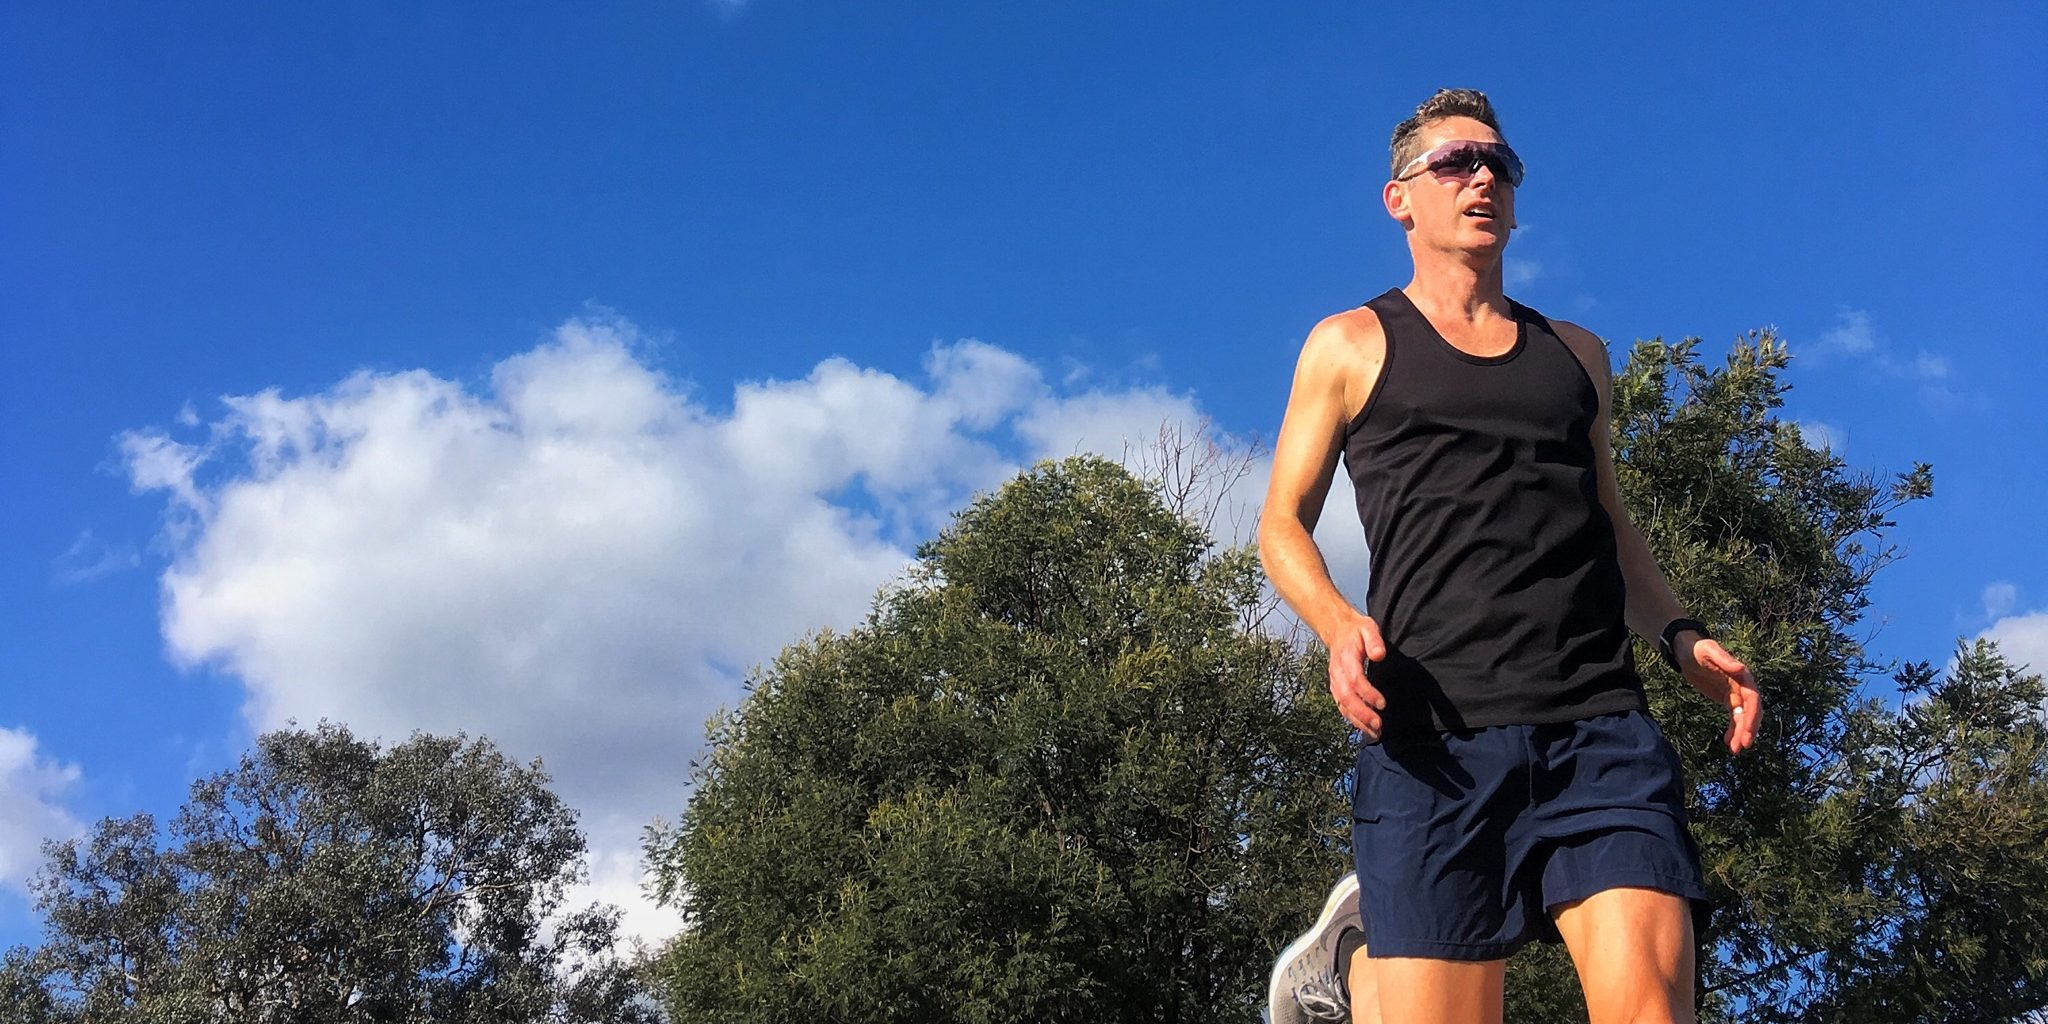 How To Train Without A Goal Race: 3 Steps To Setup Your Running